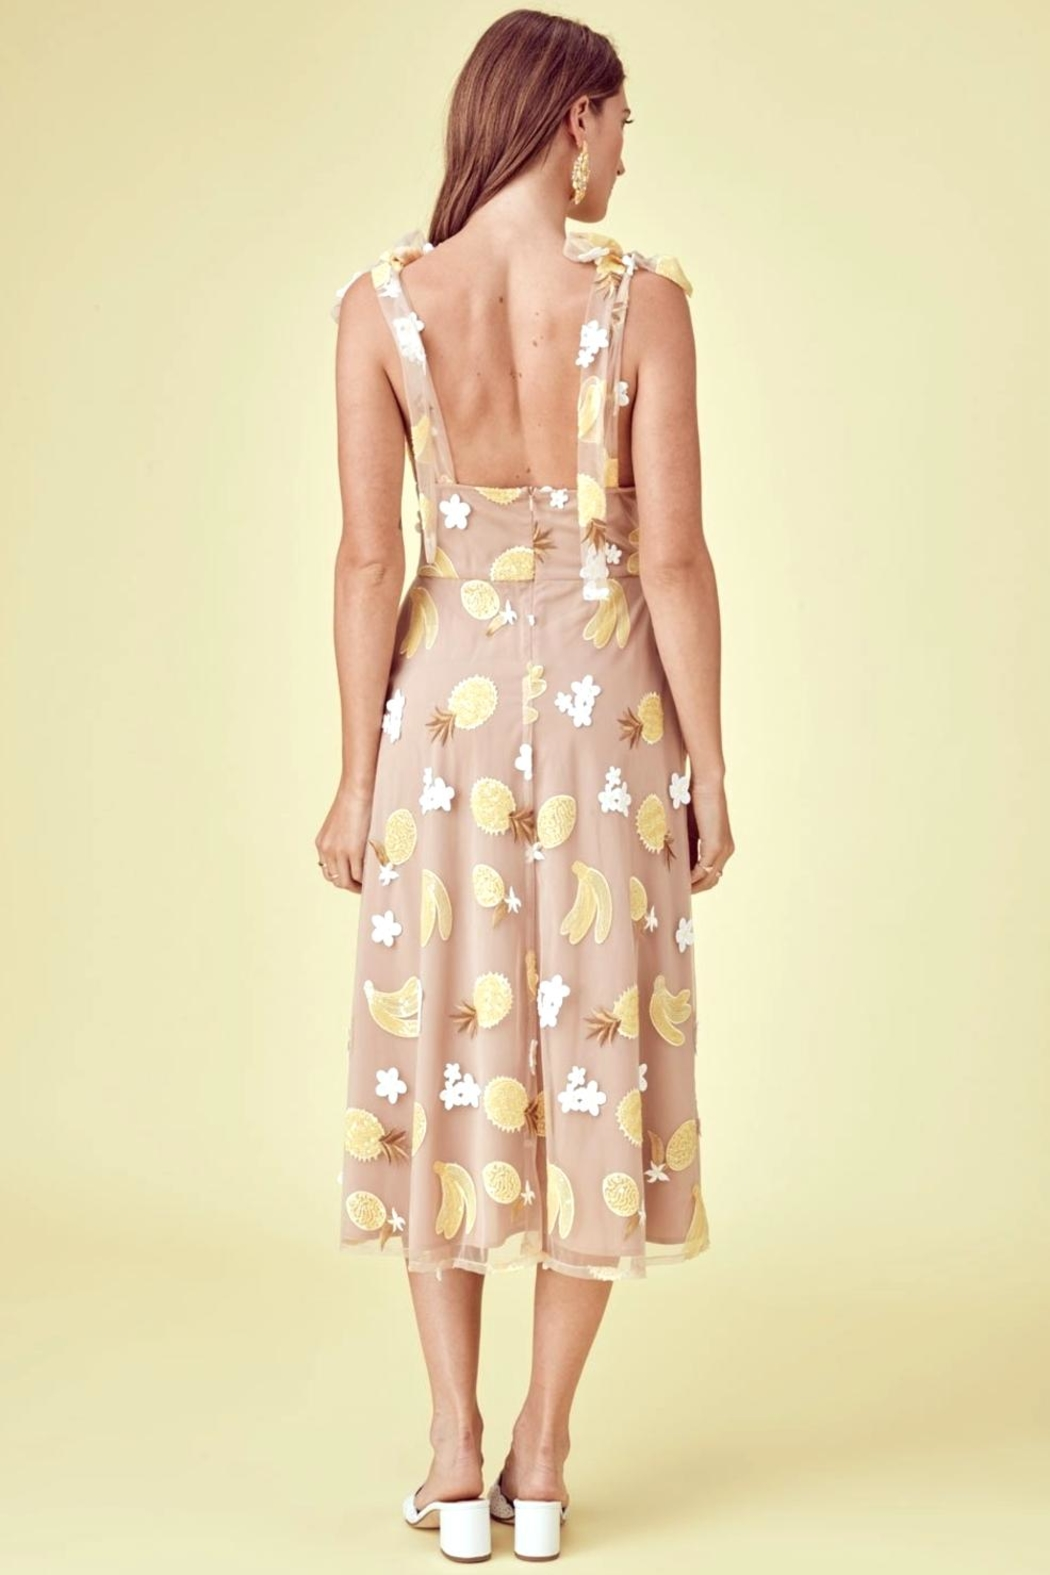 a5890c73ba66 FOR LOVE & LEMONS Fruitpunch Midi Dress from Canada by Angel ...